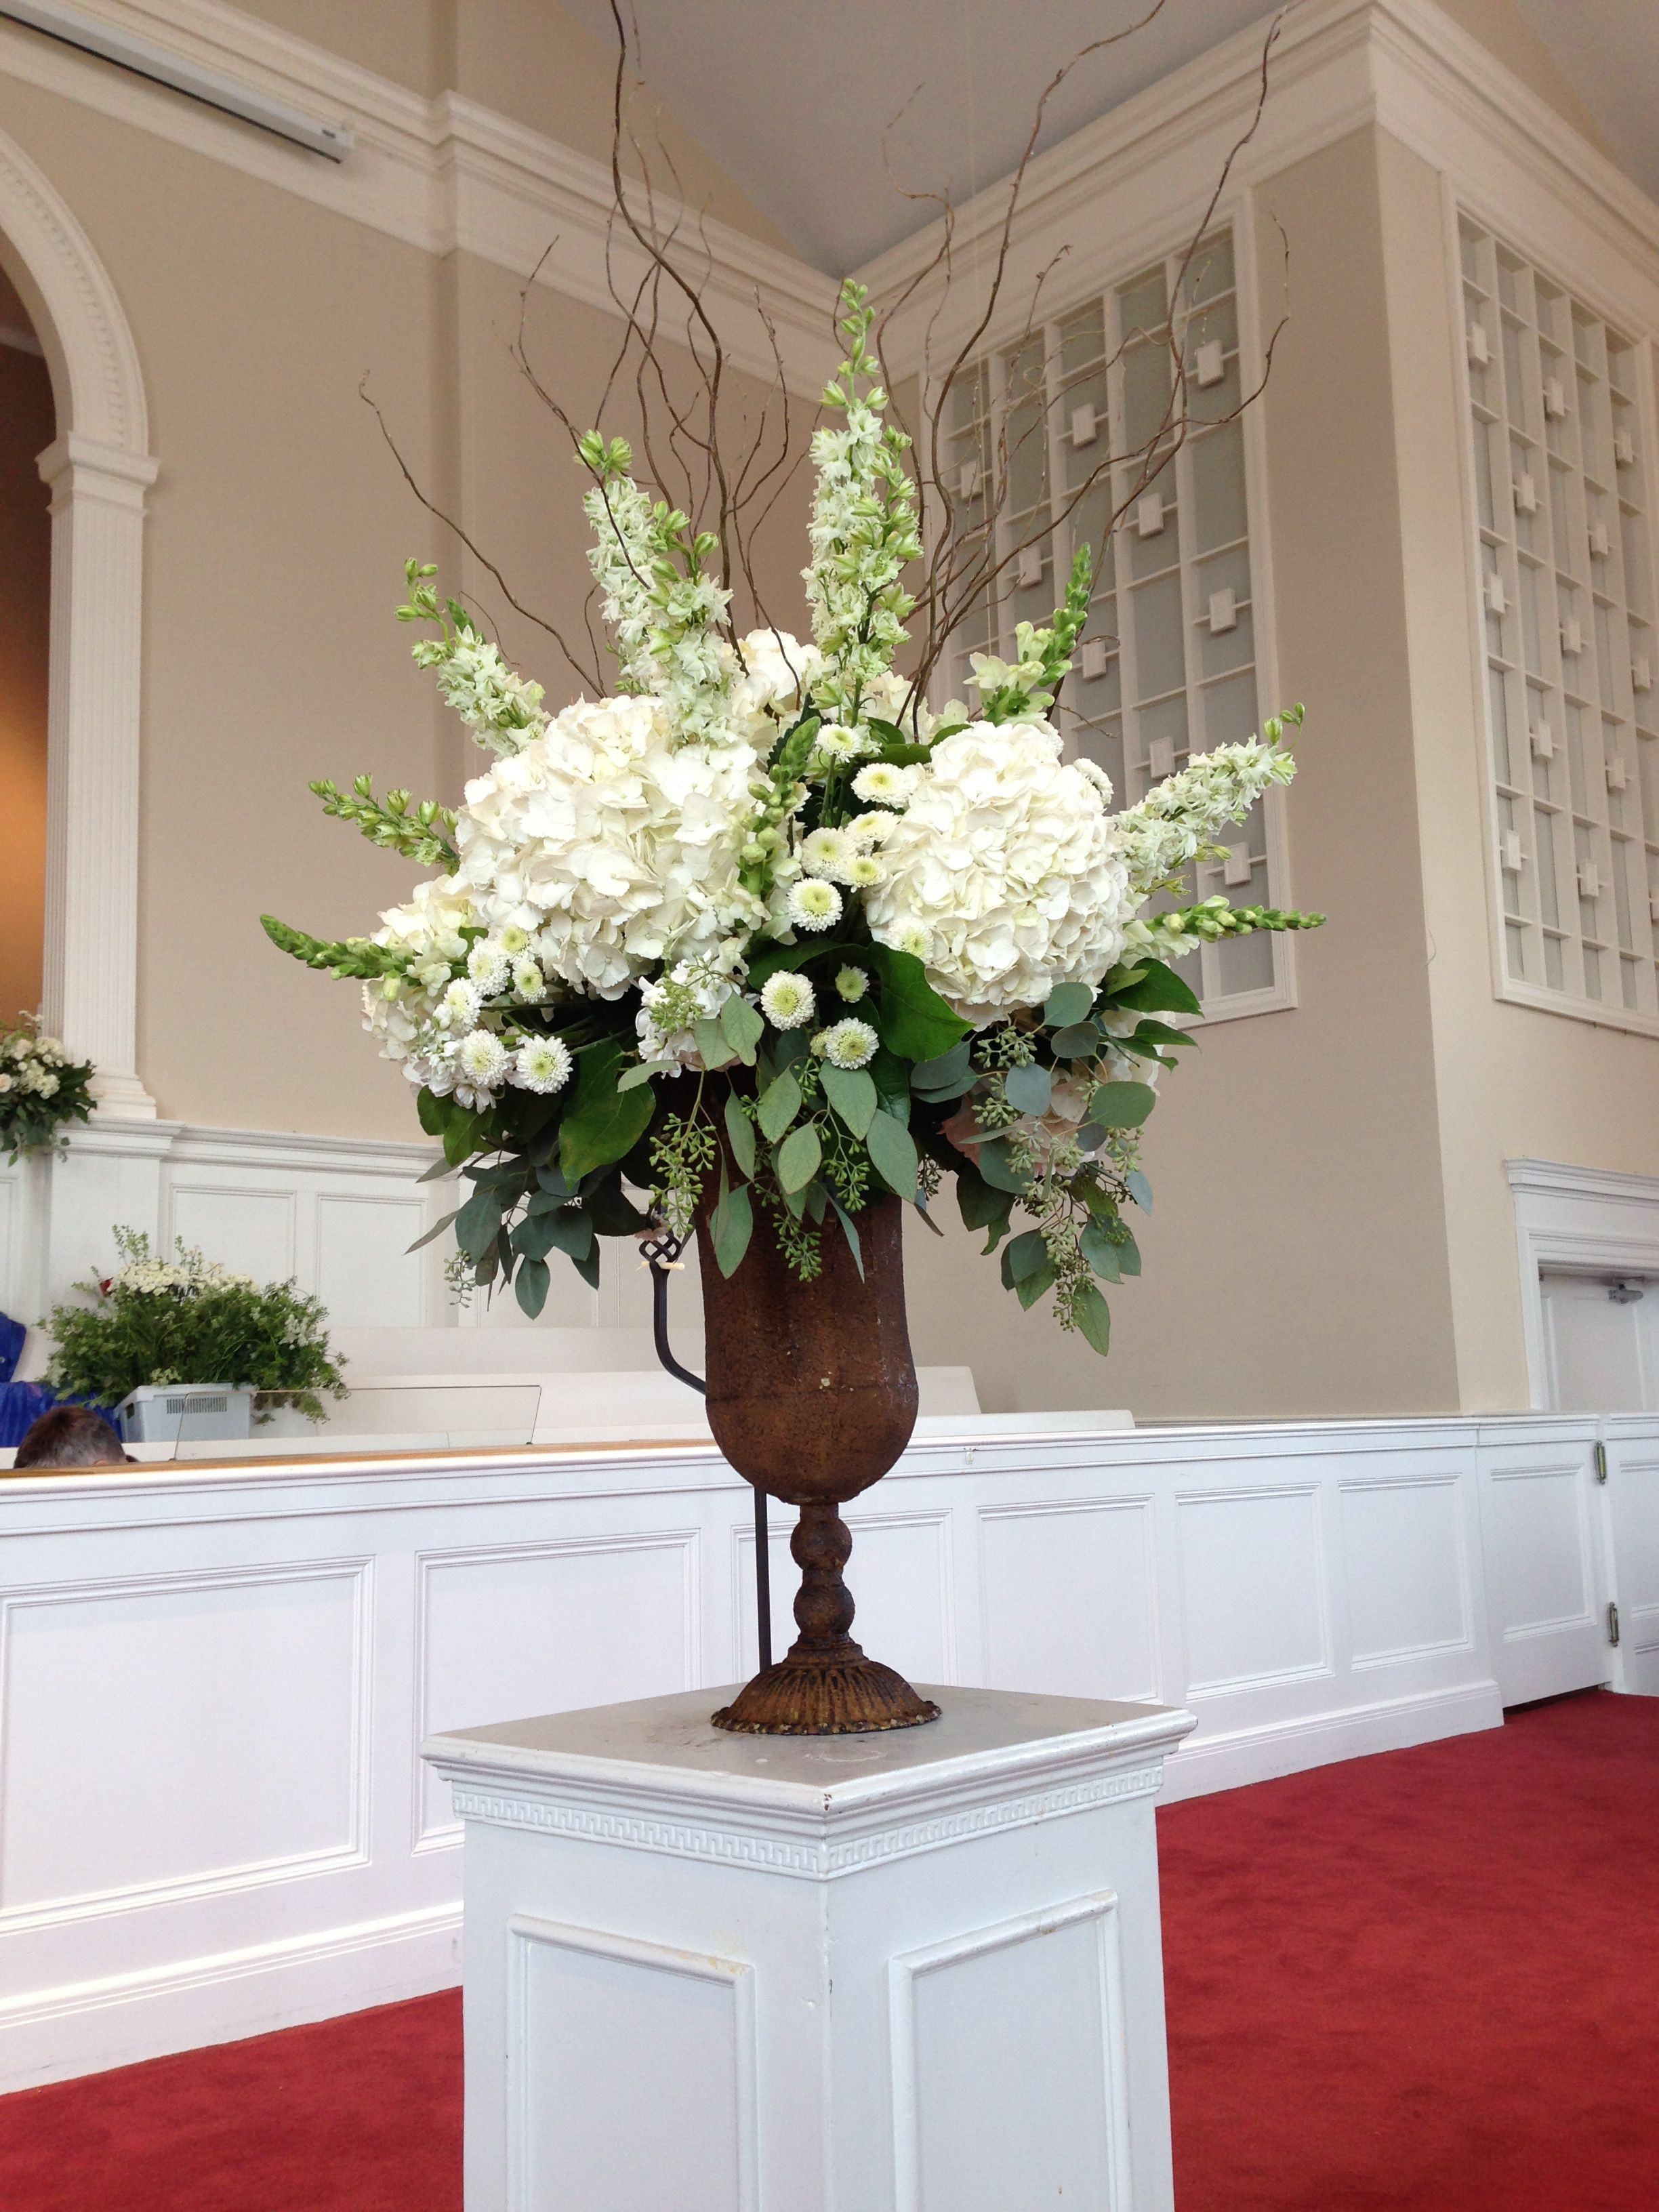 Church Arrangement Florals Wedding Decorations Traditional Wedding Classic Wedding flowers Rustic Urn chic Hydrangeas White Flowers Green